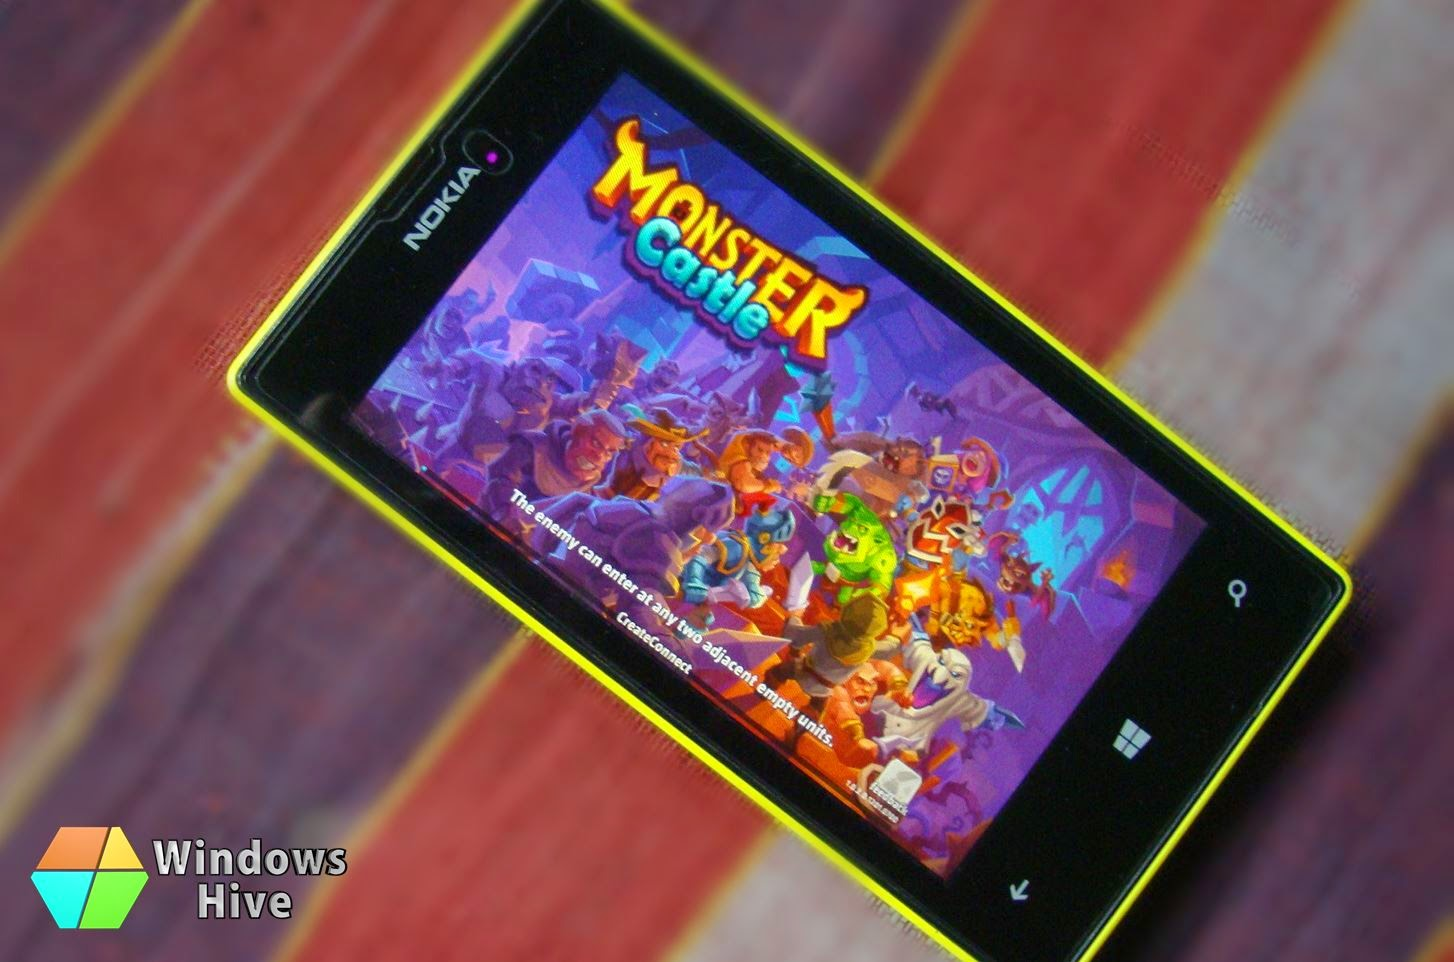 Monster castle on Windows Phone, games, apps